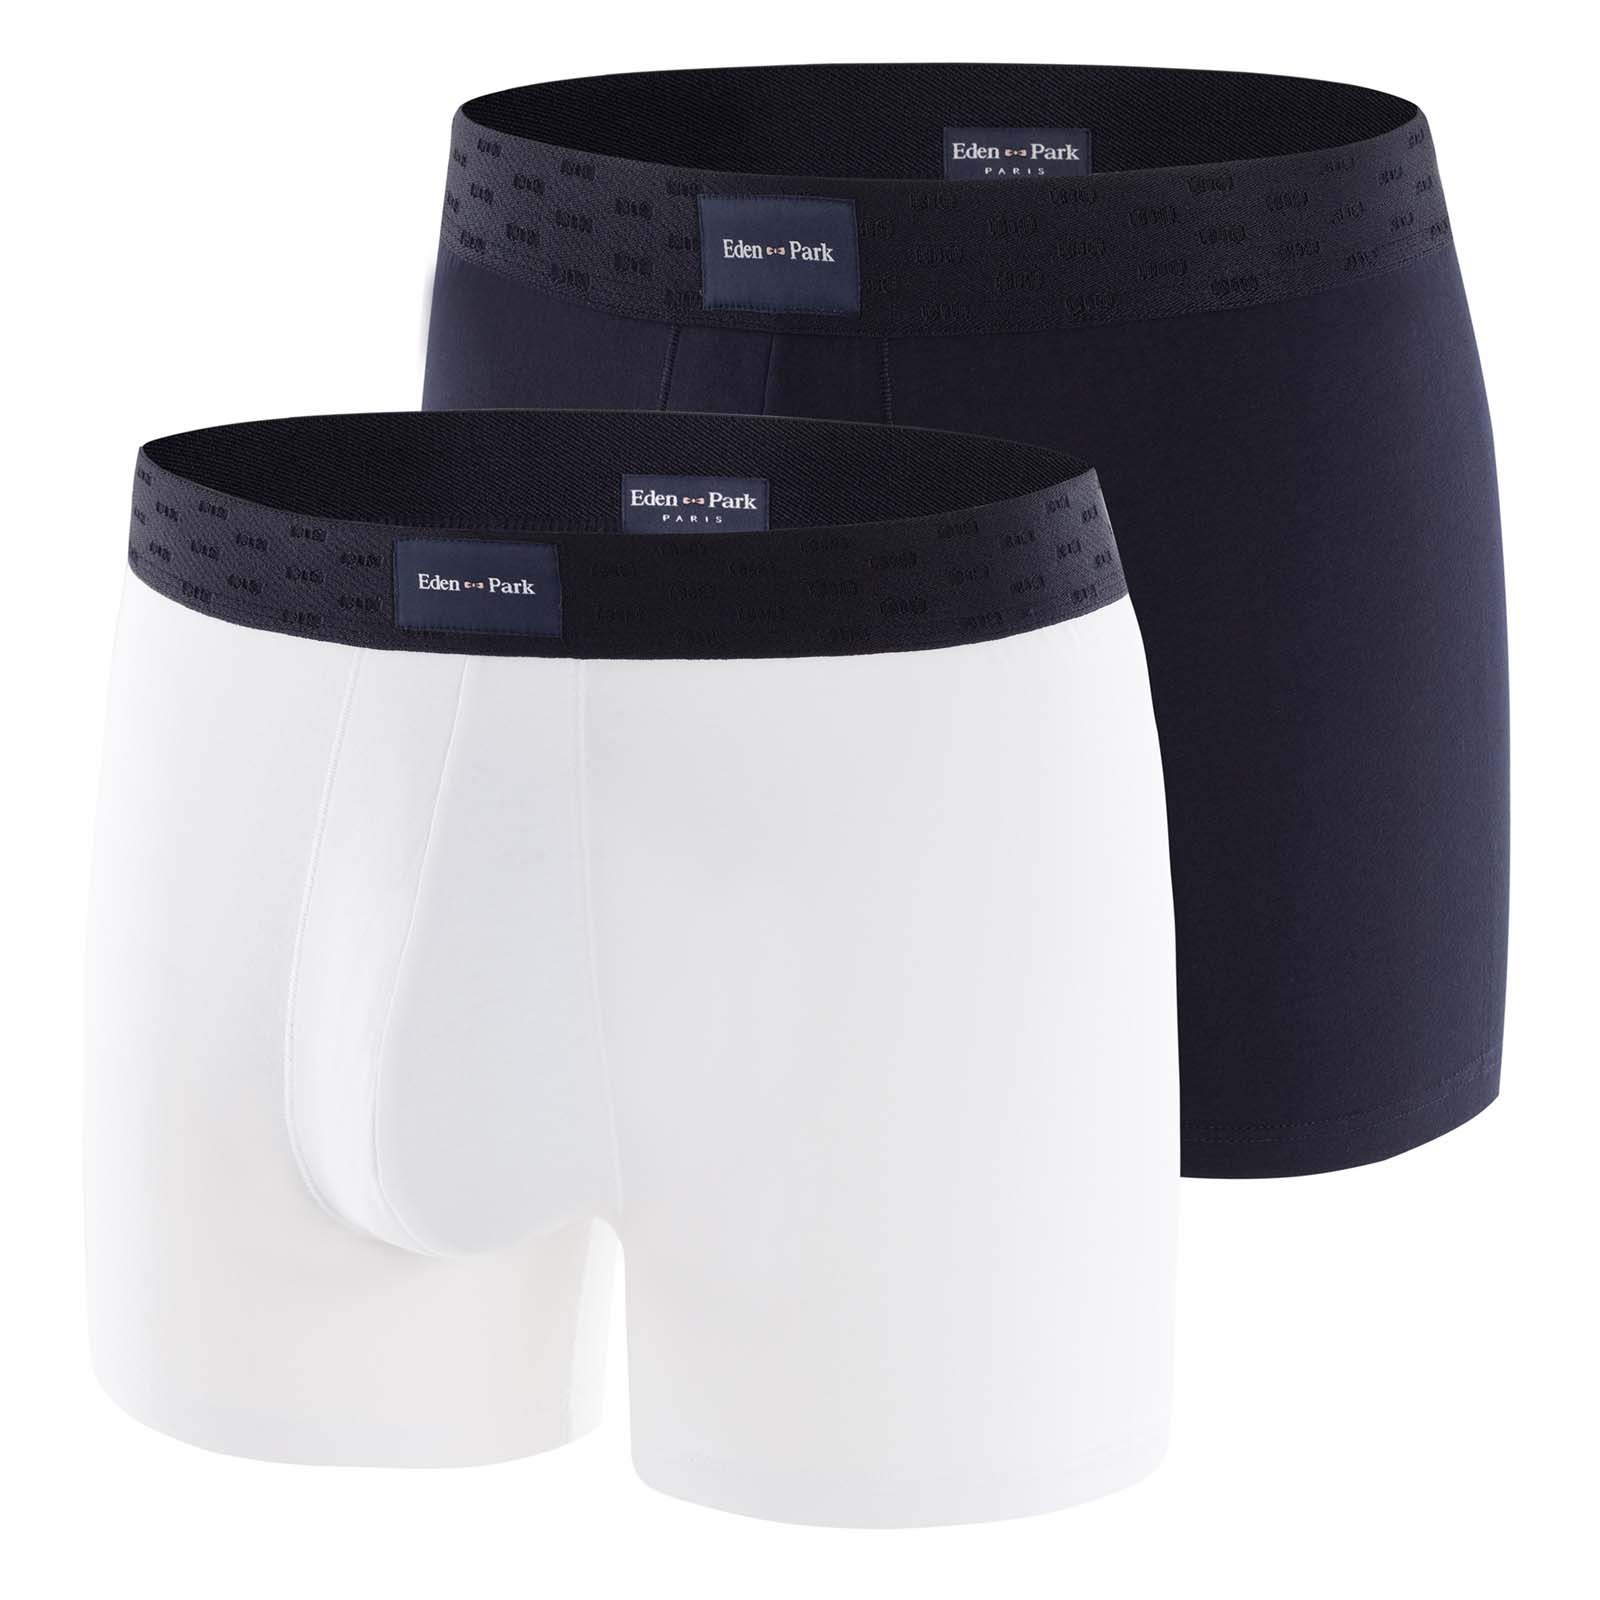 Pack of 2 Boxers Eden Park E657F45